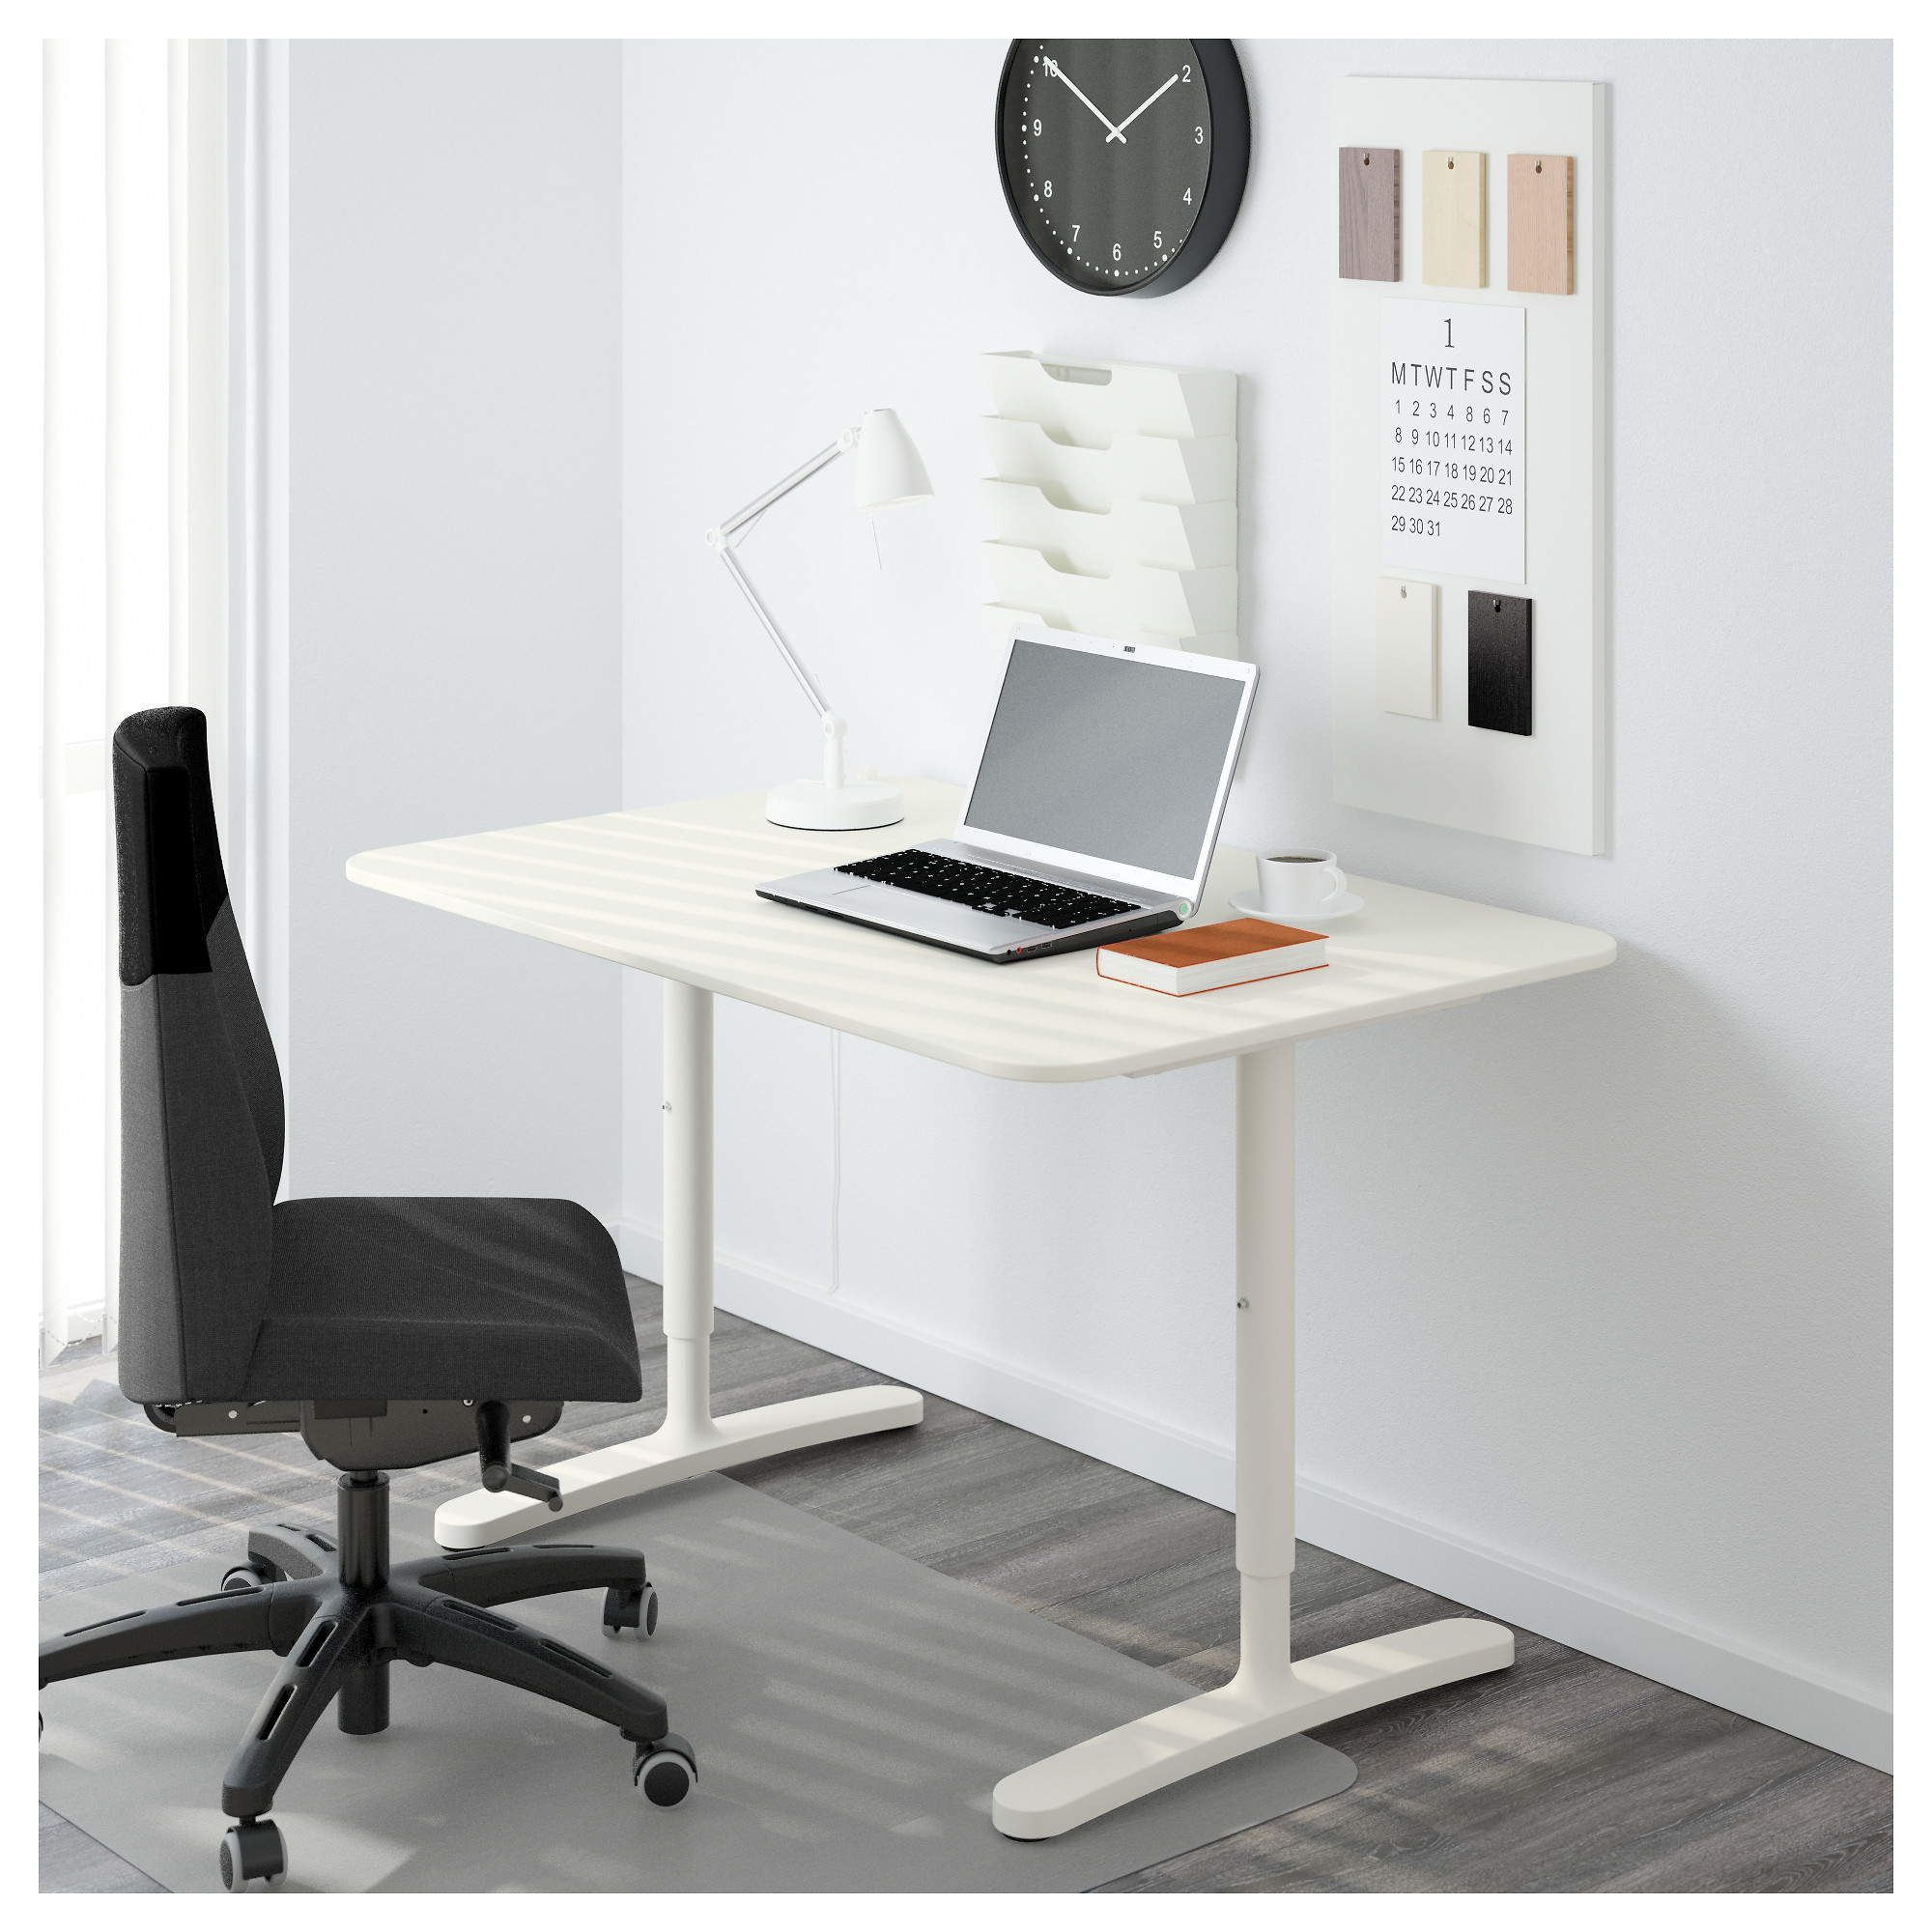 Ikea Bekant White Underframe For Table Top Ikea Bekant Ikea Bekant Desk Ikea